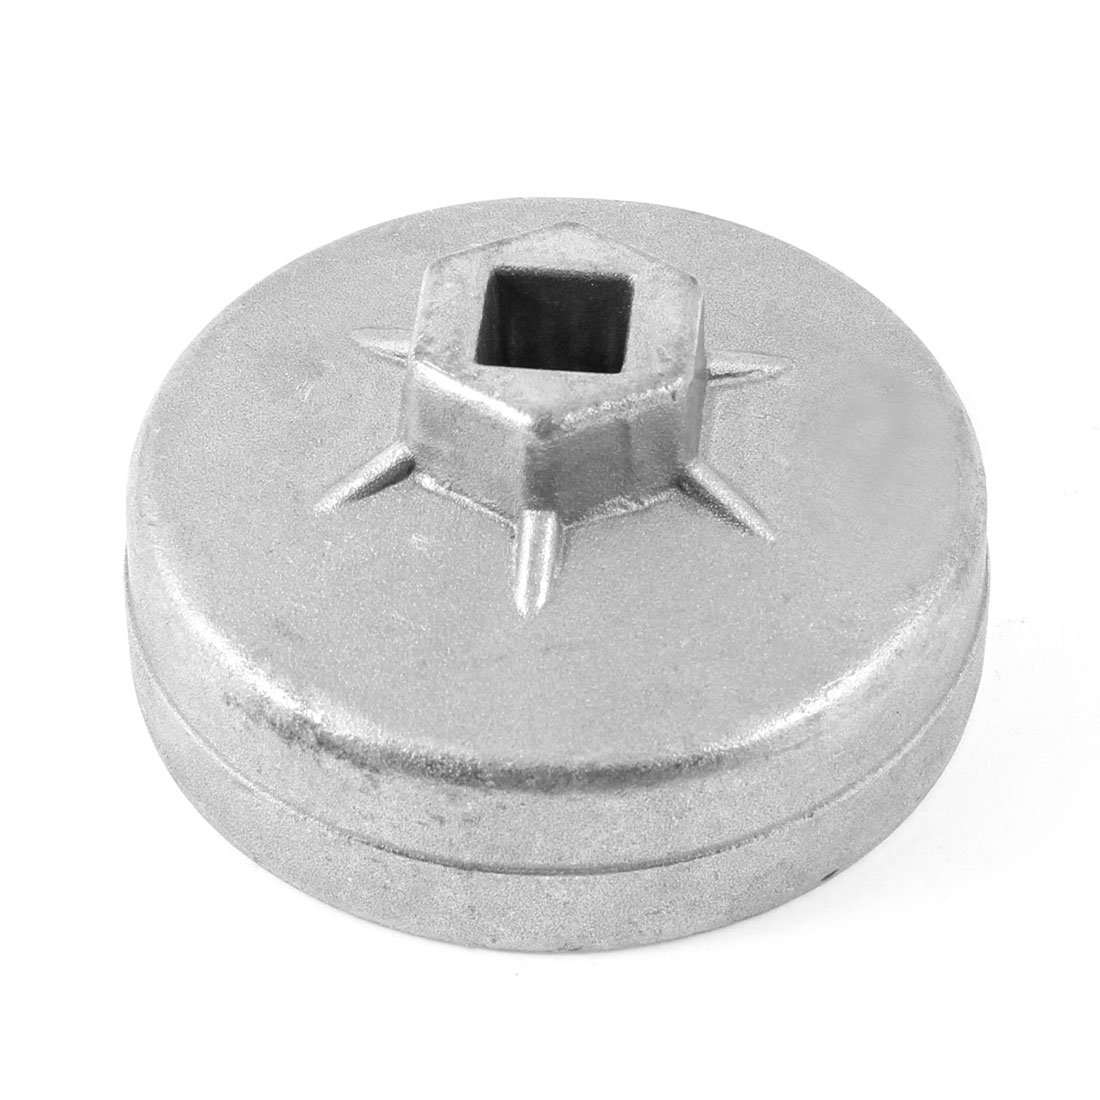 Socket Wrench Dimensions Cap Wrench Socket Cup